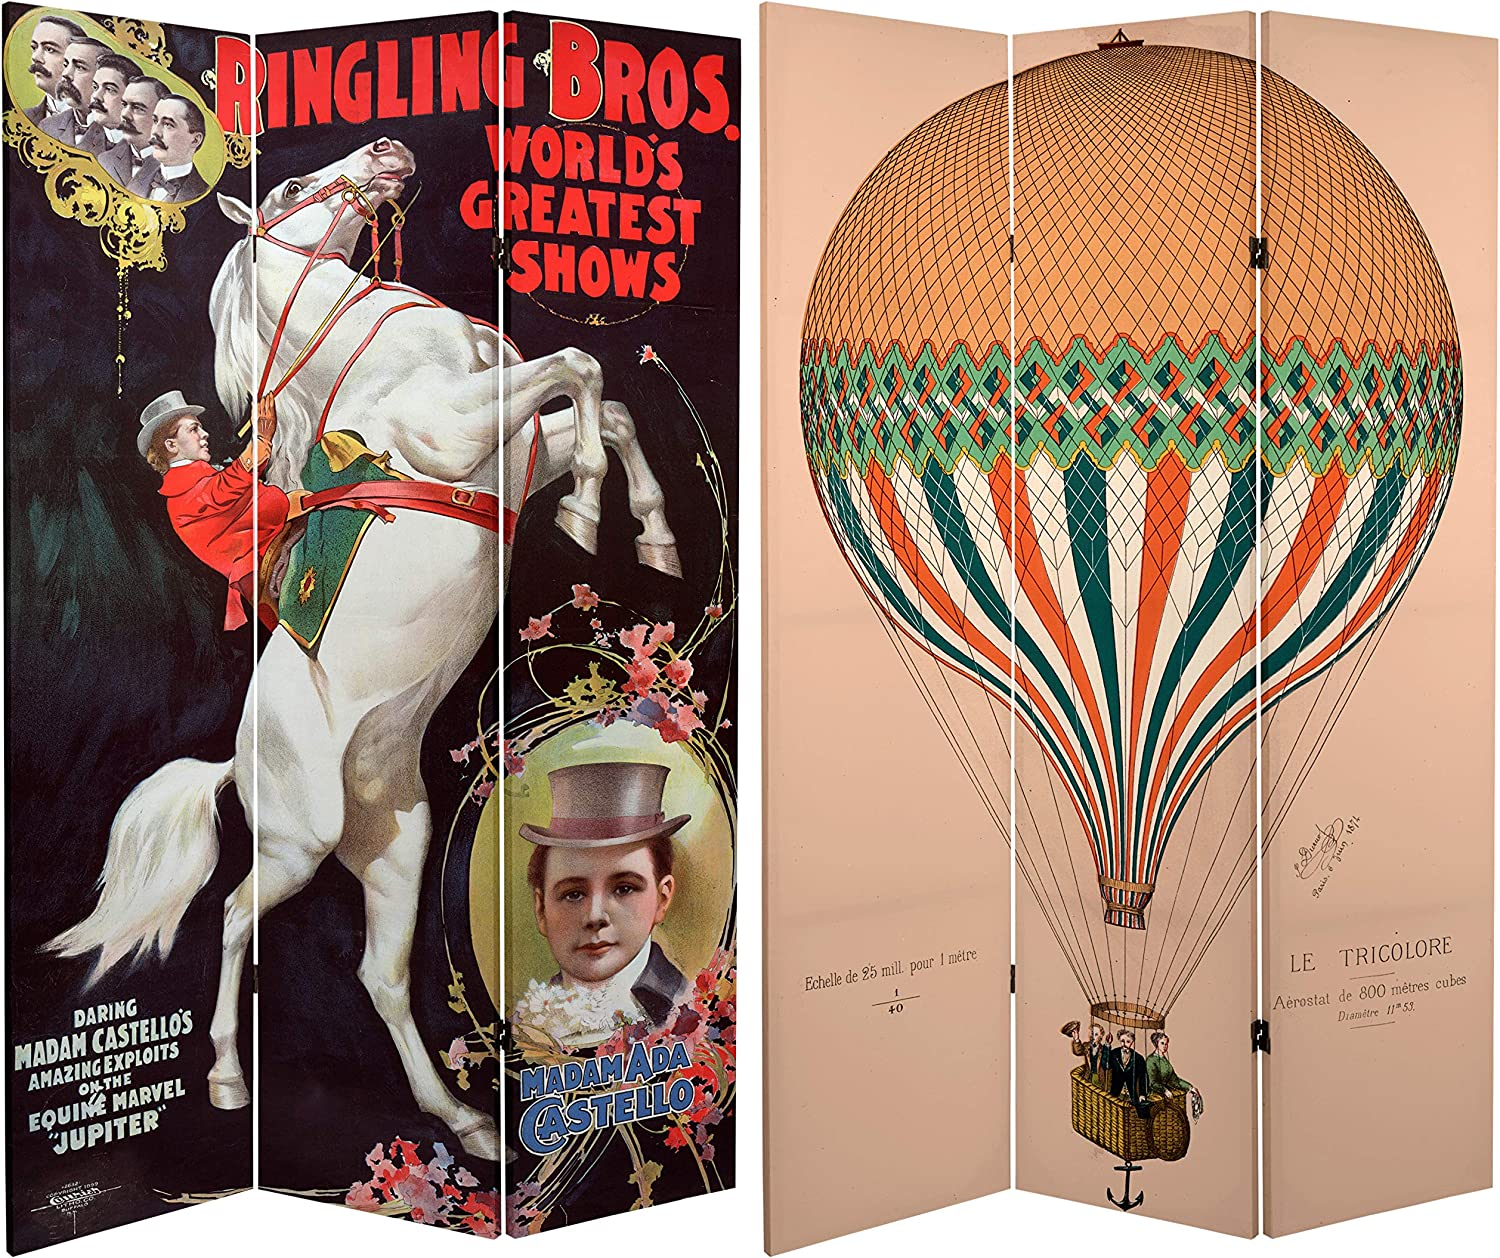 Oriental Furniture 6 ft. Tall Double Sided Circus Room Divider